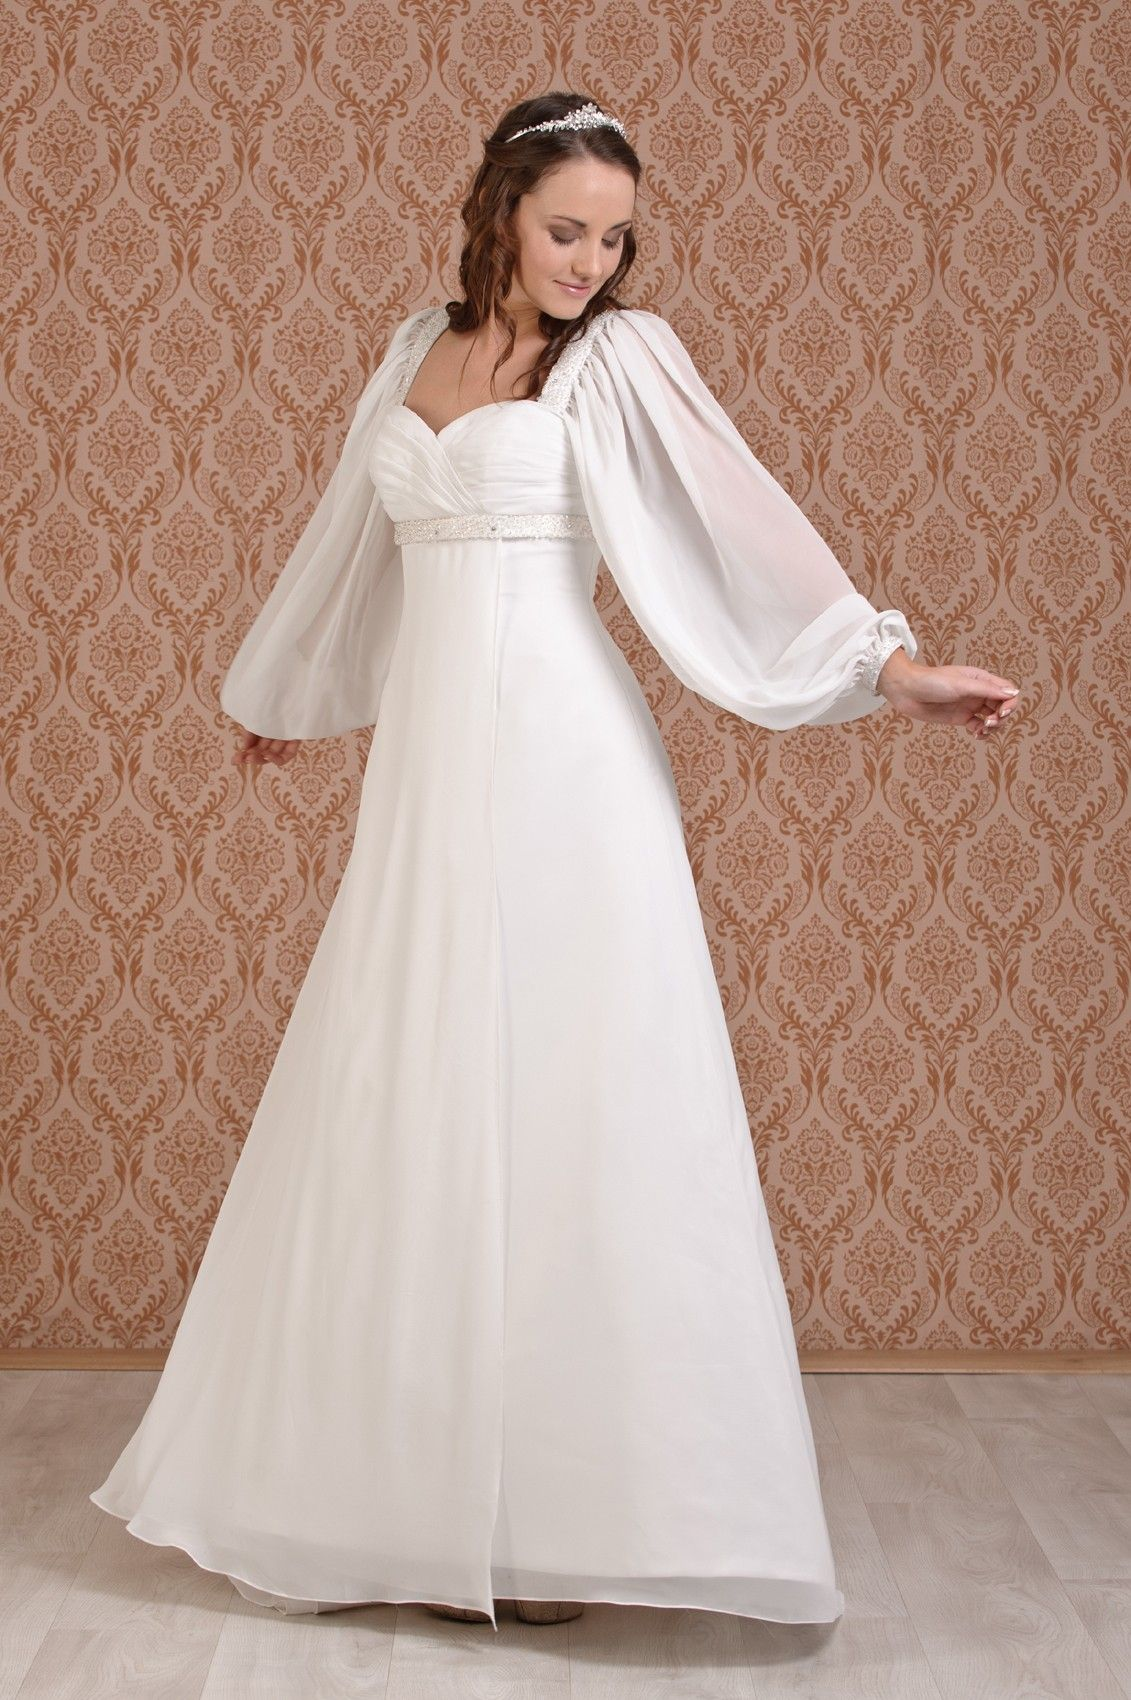 long sleeve wedding dresses Long Sleeve Wedding Dresses To Commemorate Your Special Day